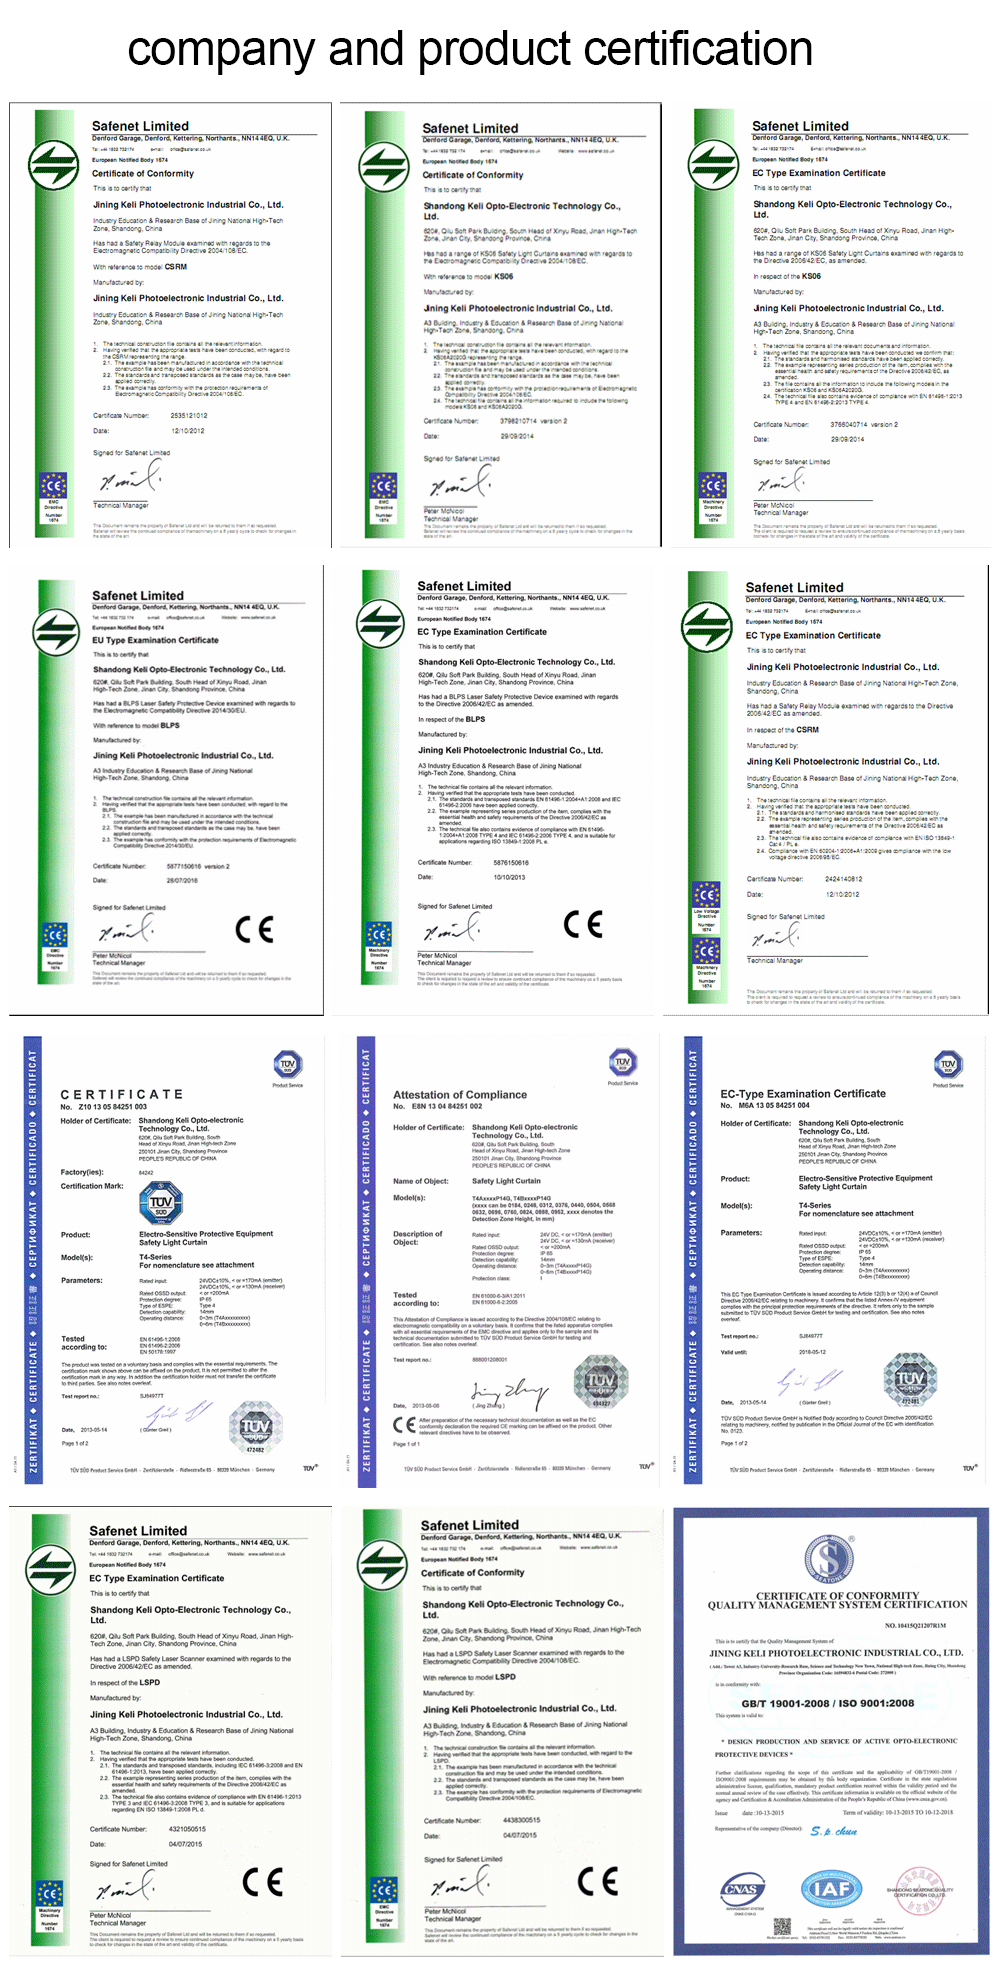 company-and-product-certification4